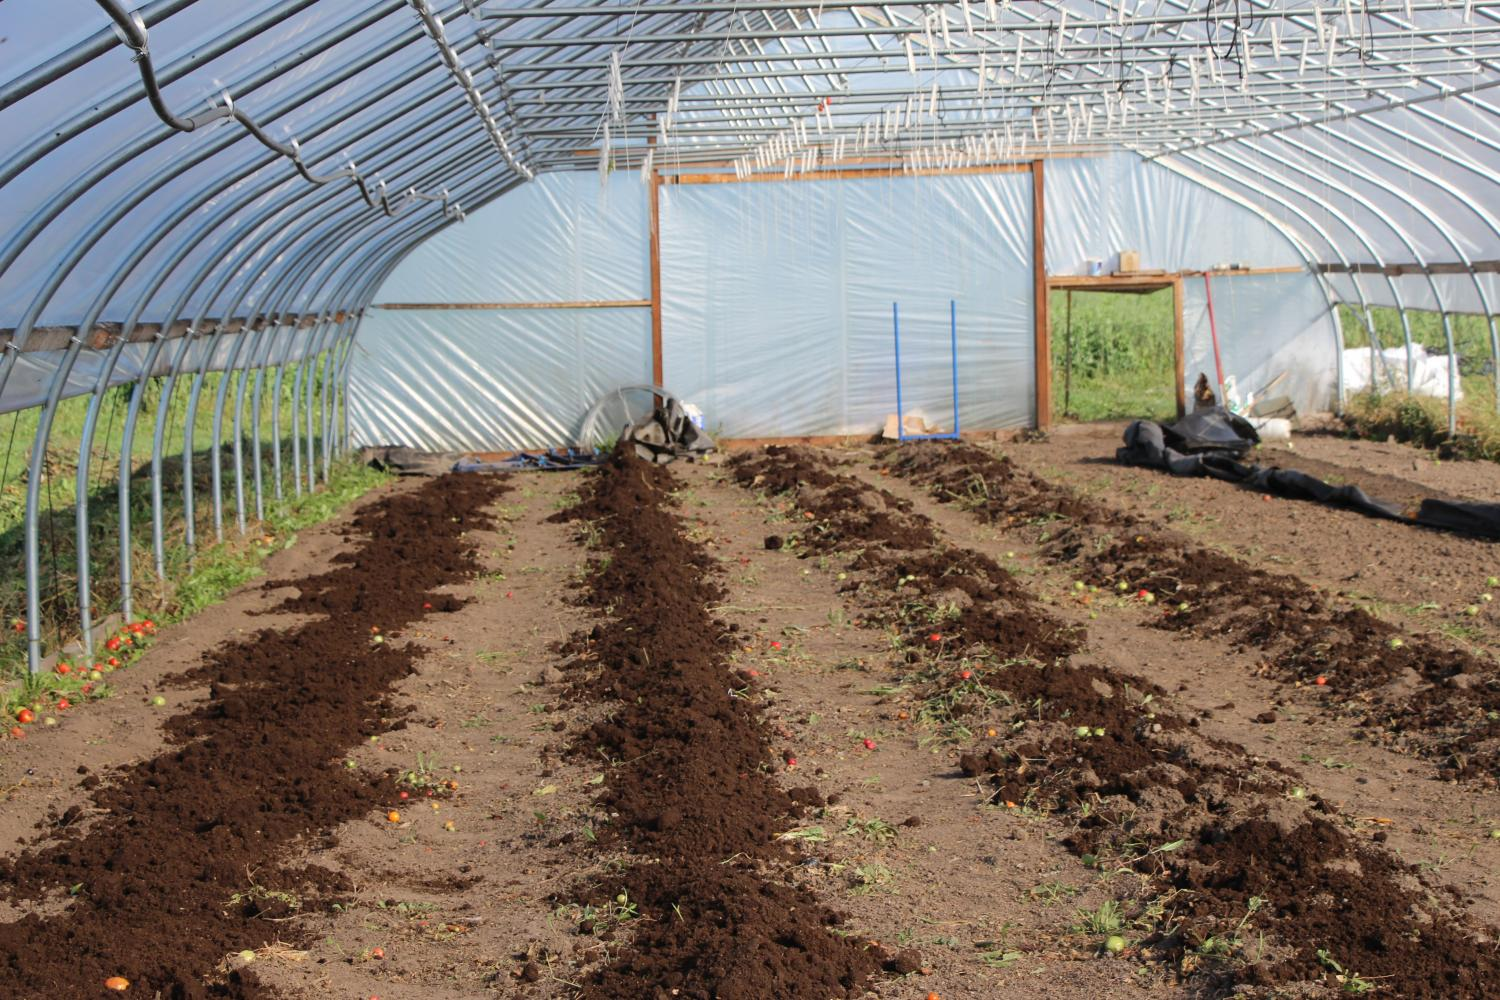 Farming in the Chippewa Valley: The Rise of CSA's